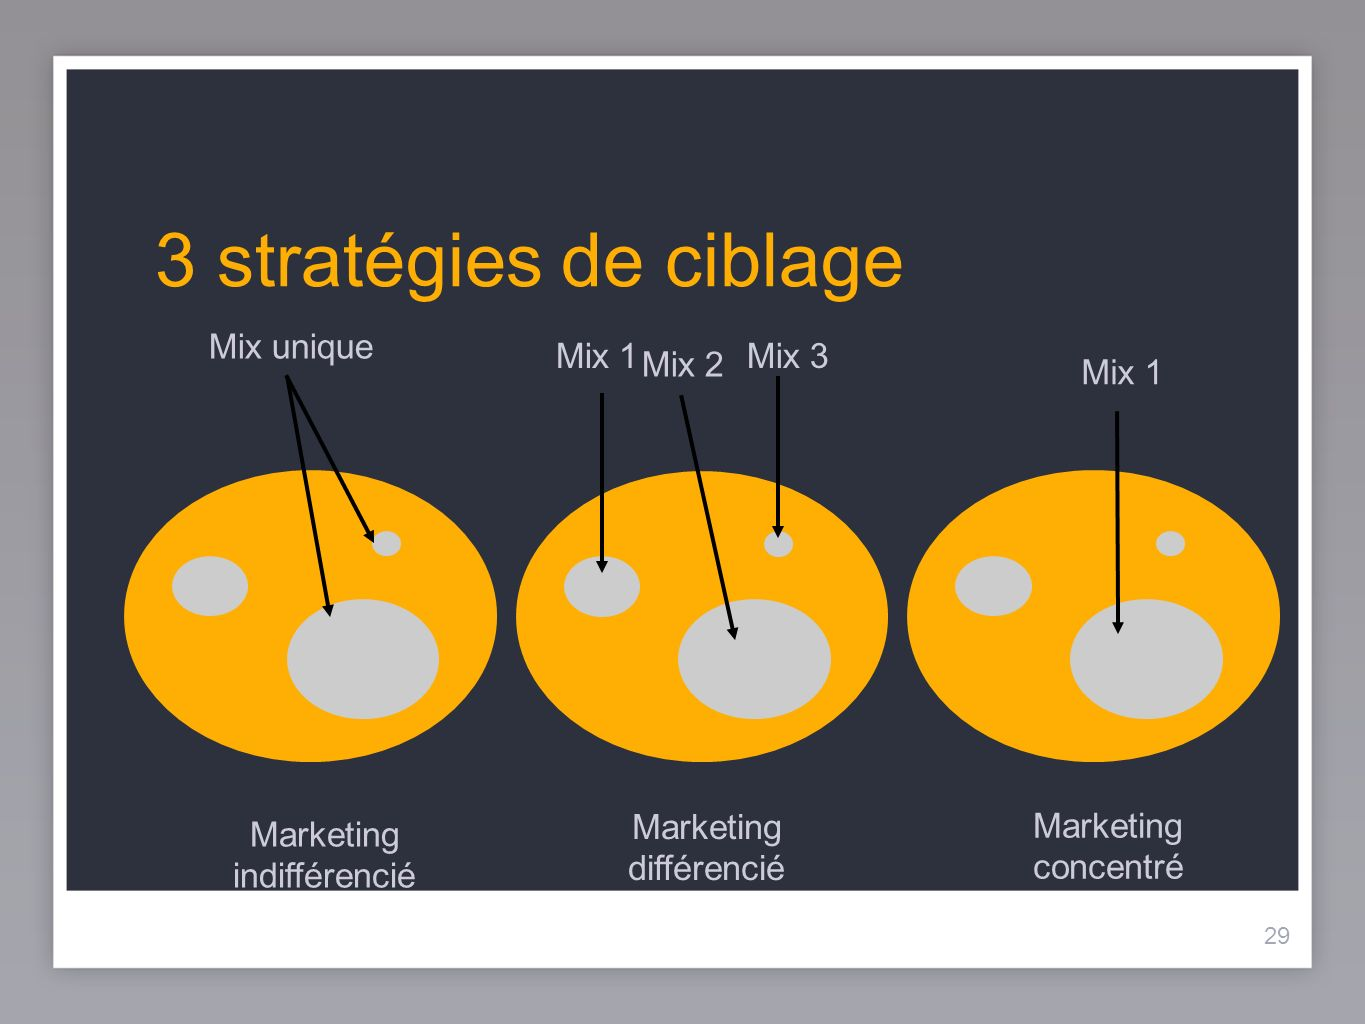 29 3 stratégies de ciblage 29 Mix unique Mix 1 Mix 2 Mix 3 Marketing indifférencié Marketing différencié Marketing concentré